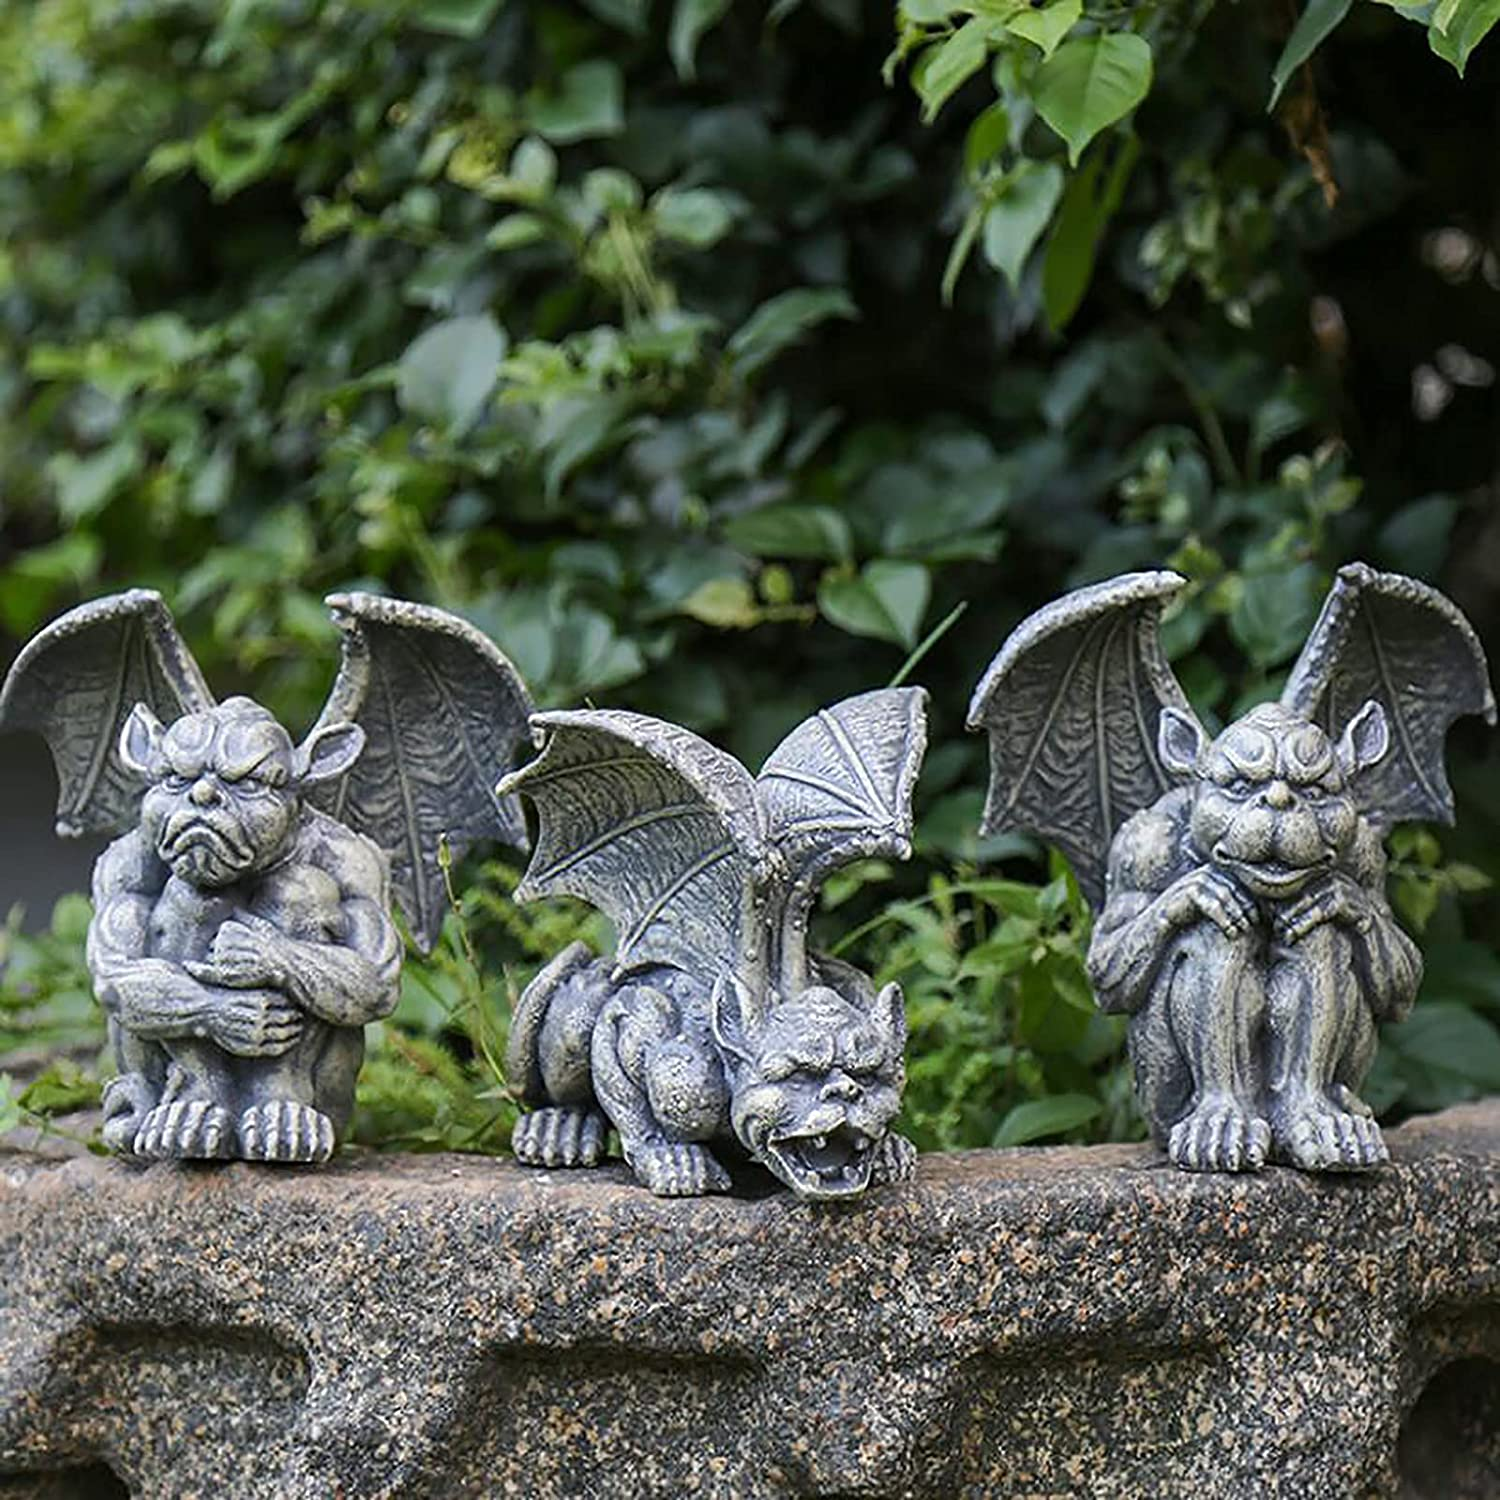 L-ELEGANT Yard Art Decor Backyard Porch Patio Lawn Balcony Statues,Monster Garden Statues,Resin Gargoyle Outdoor Statue Large Winged Dragon Sculptures Gothic Animals Statues-I One Size